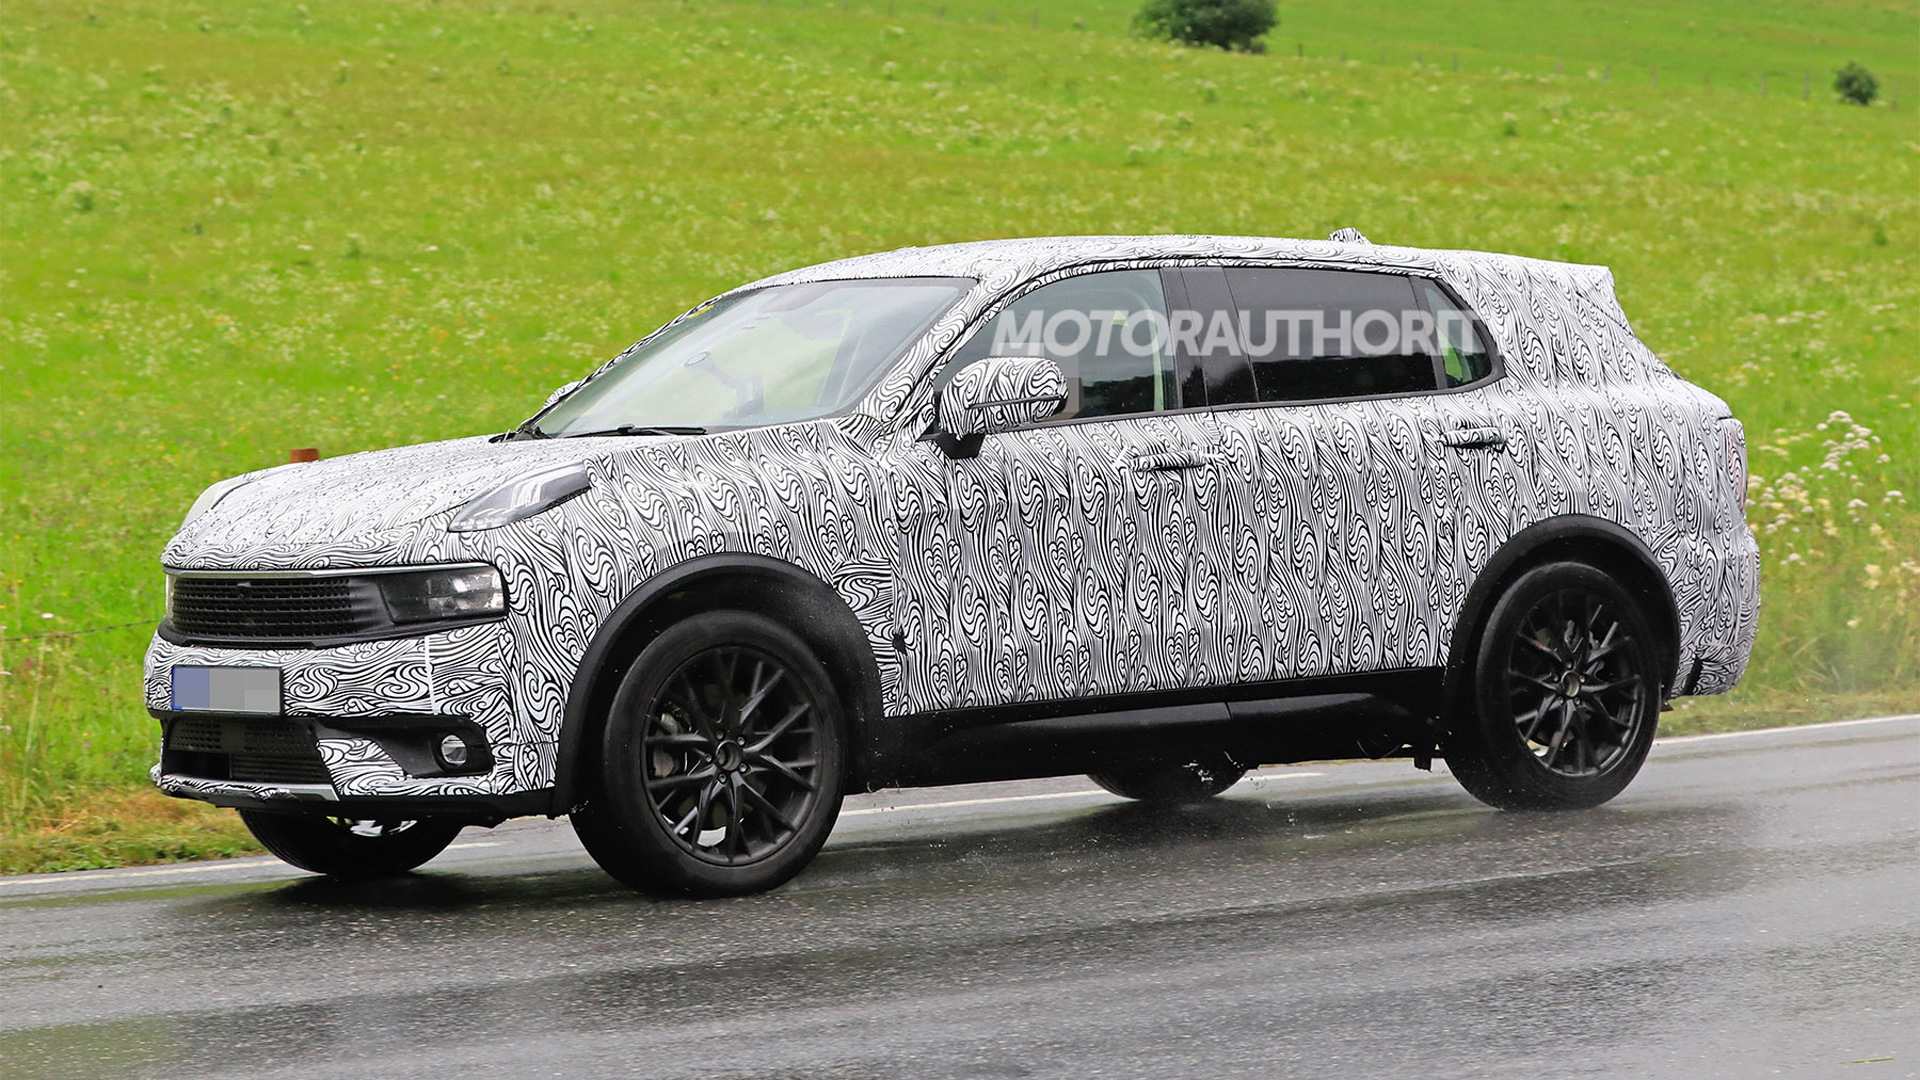 2021 Lynk & Co. 01 with third-row seats spy shots - Image via S. Baldauf/SB-Medien